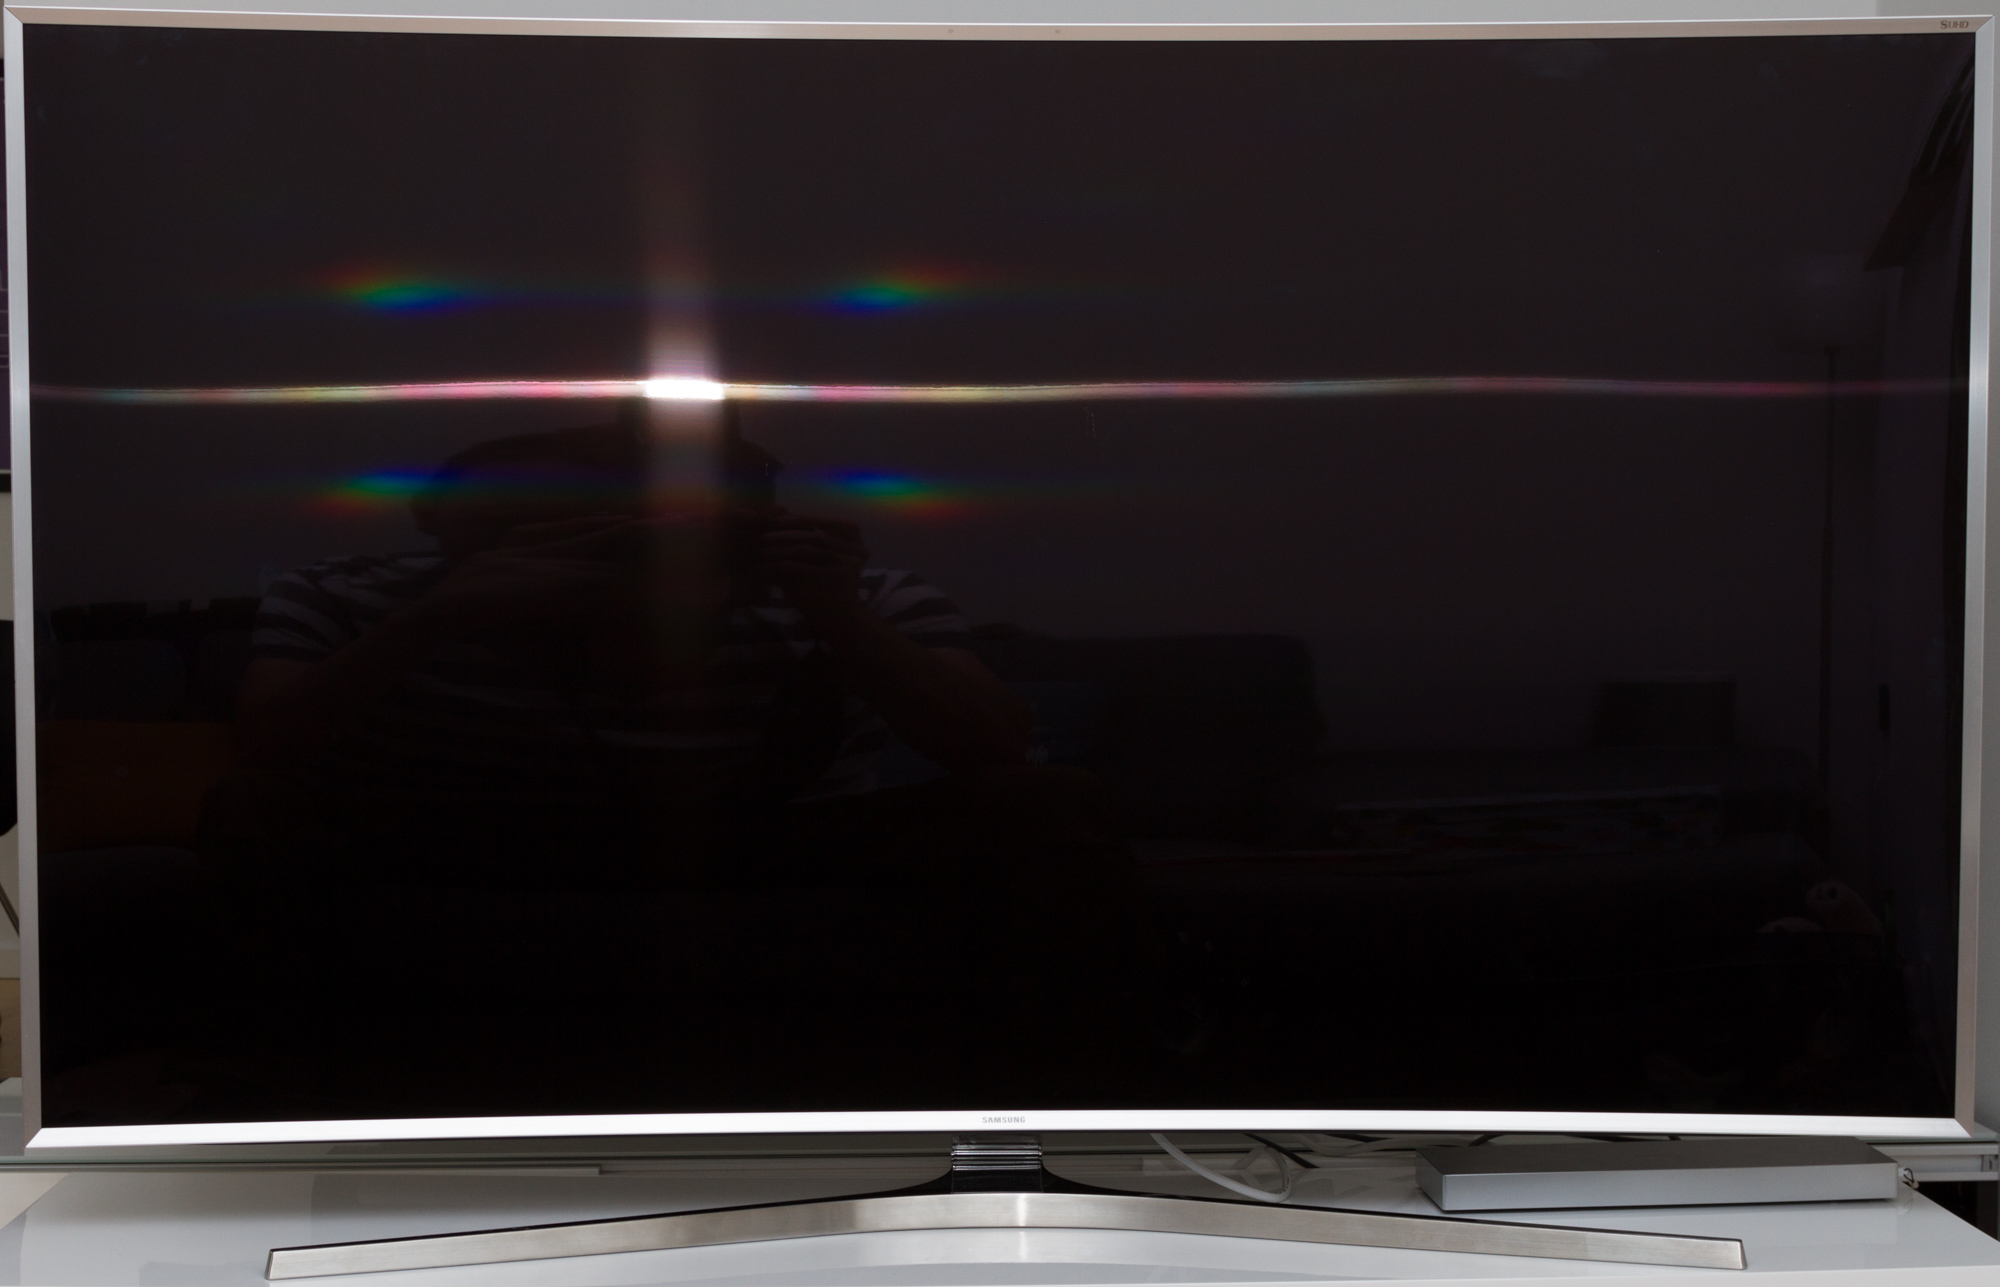 dynex 42 inch lcd tv manual